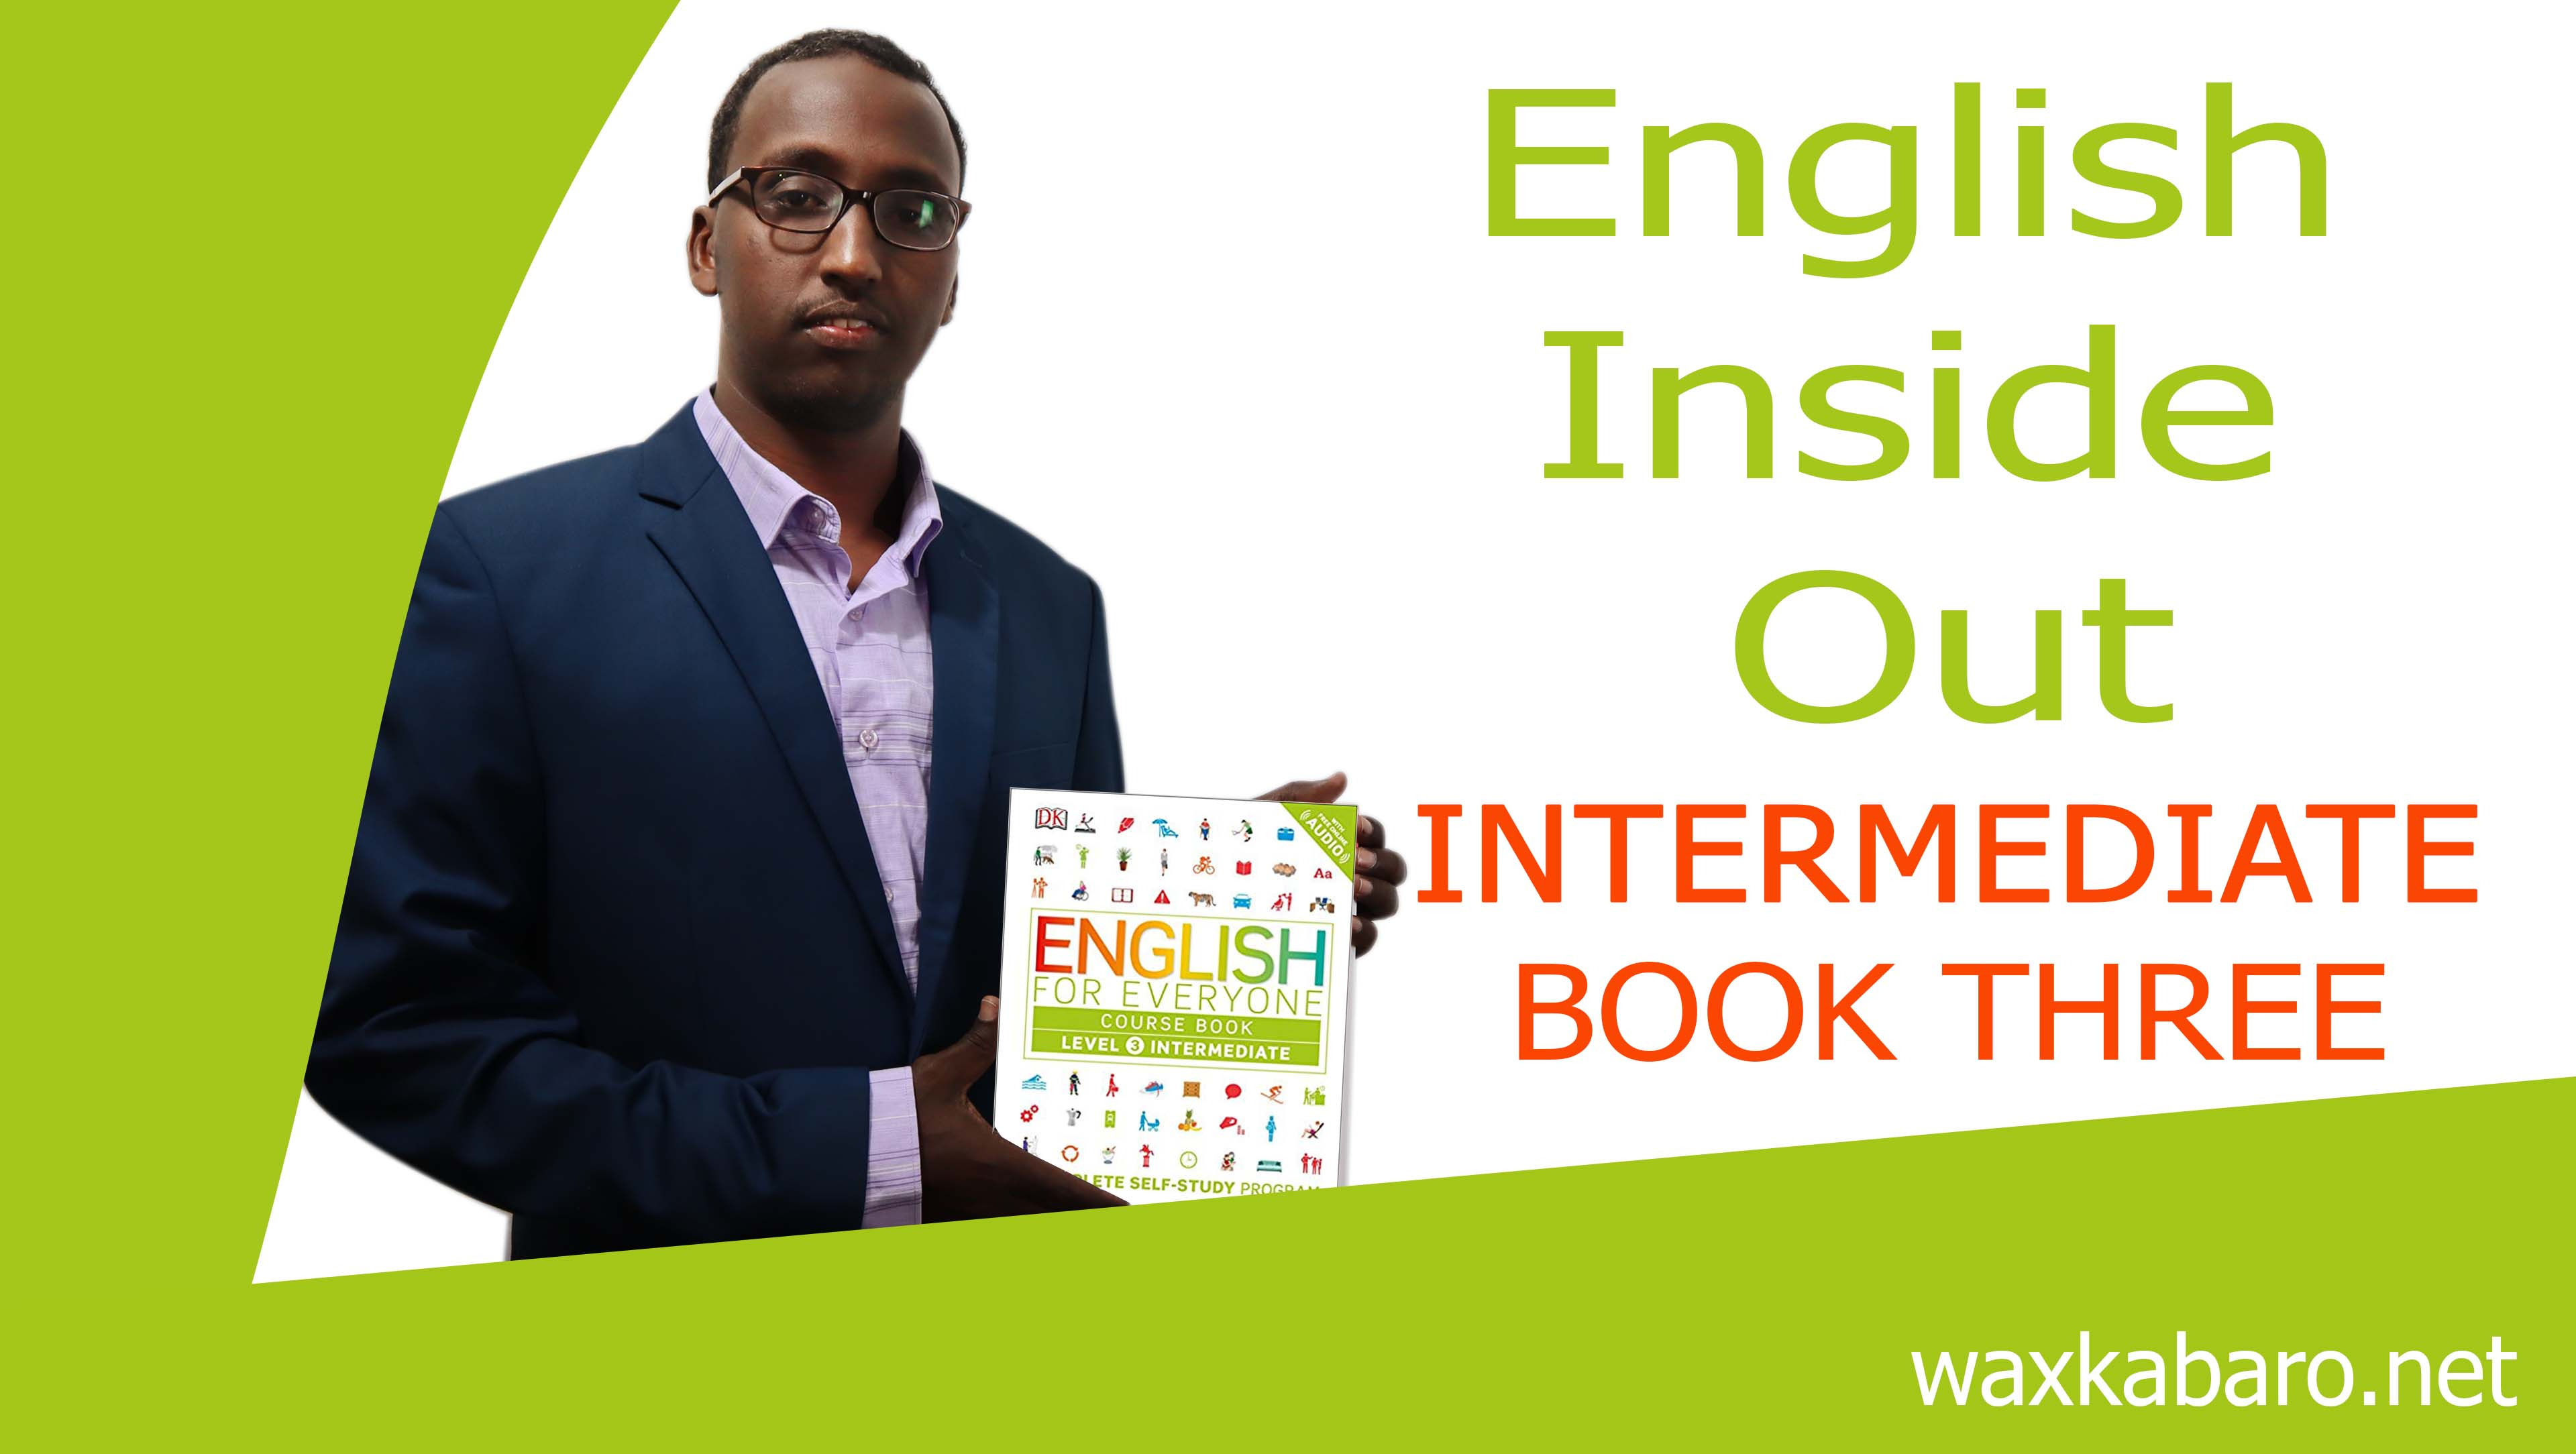 English Inside out: Intermediate